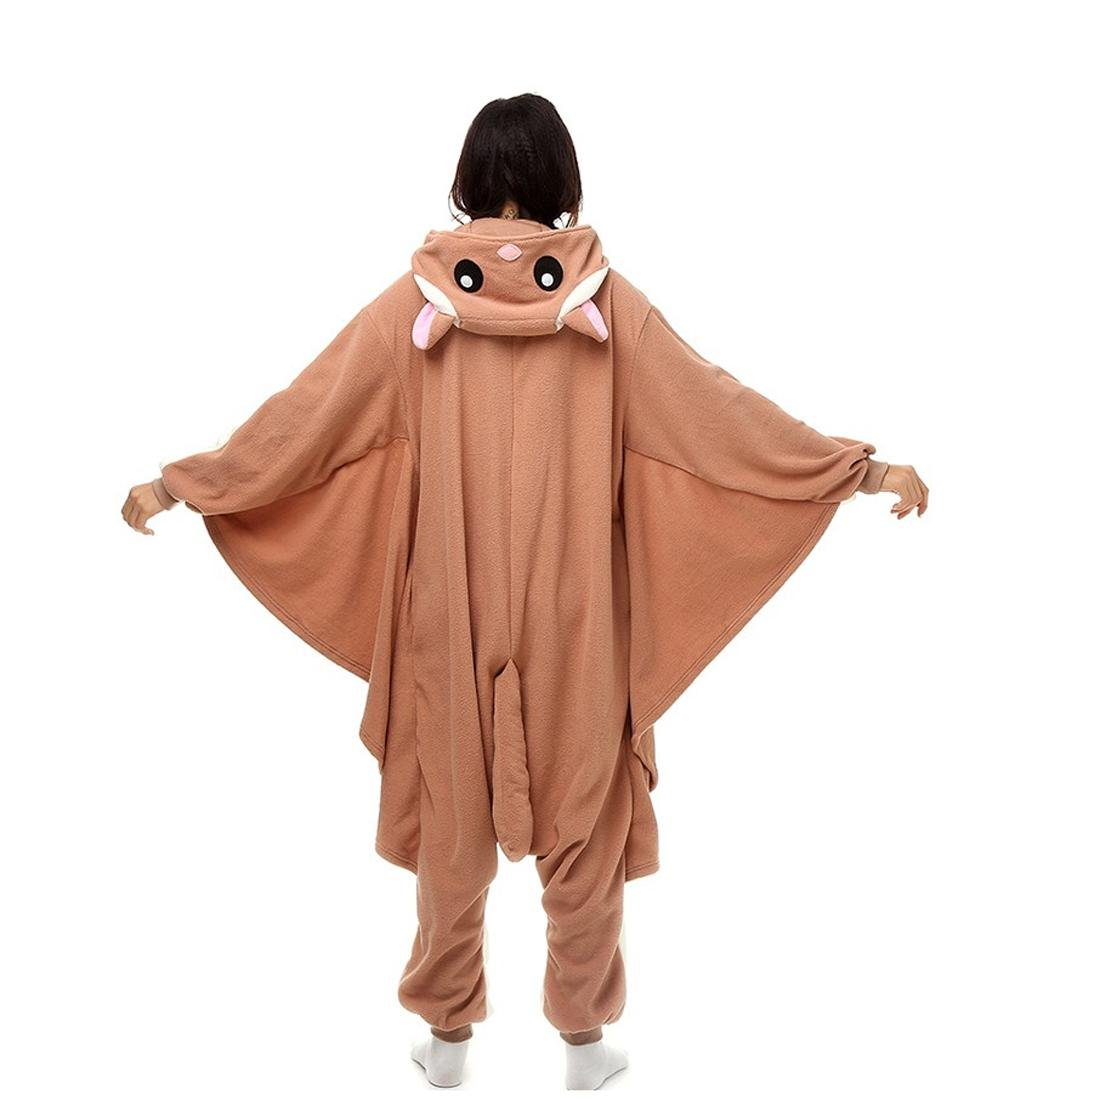 Amazon.com : HYY@ Kigurumi Pajamas Squirrel / Mouse Leotard/Onesie Halloween Animal Sleepwear White Patchwork Polar Fleece Kigurumi UnisexHalloween : Sports ...